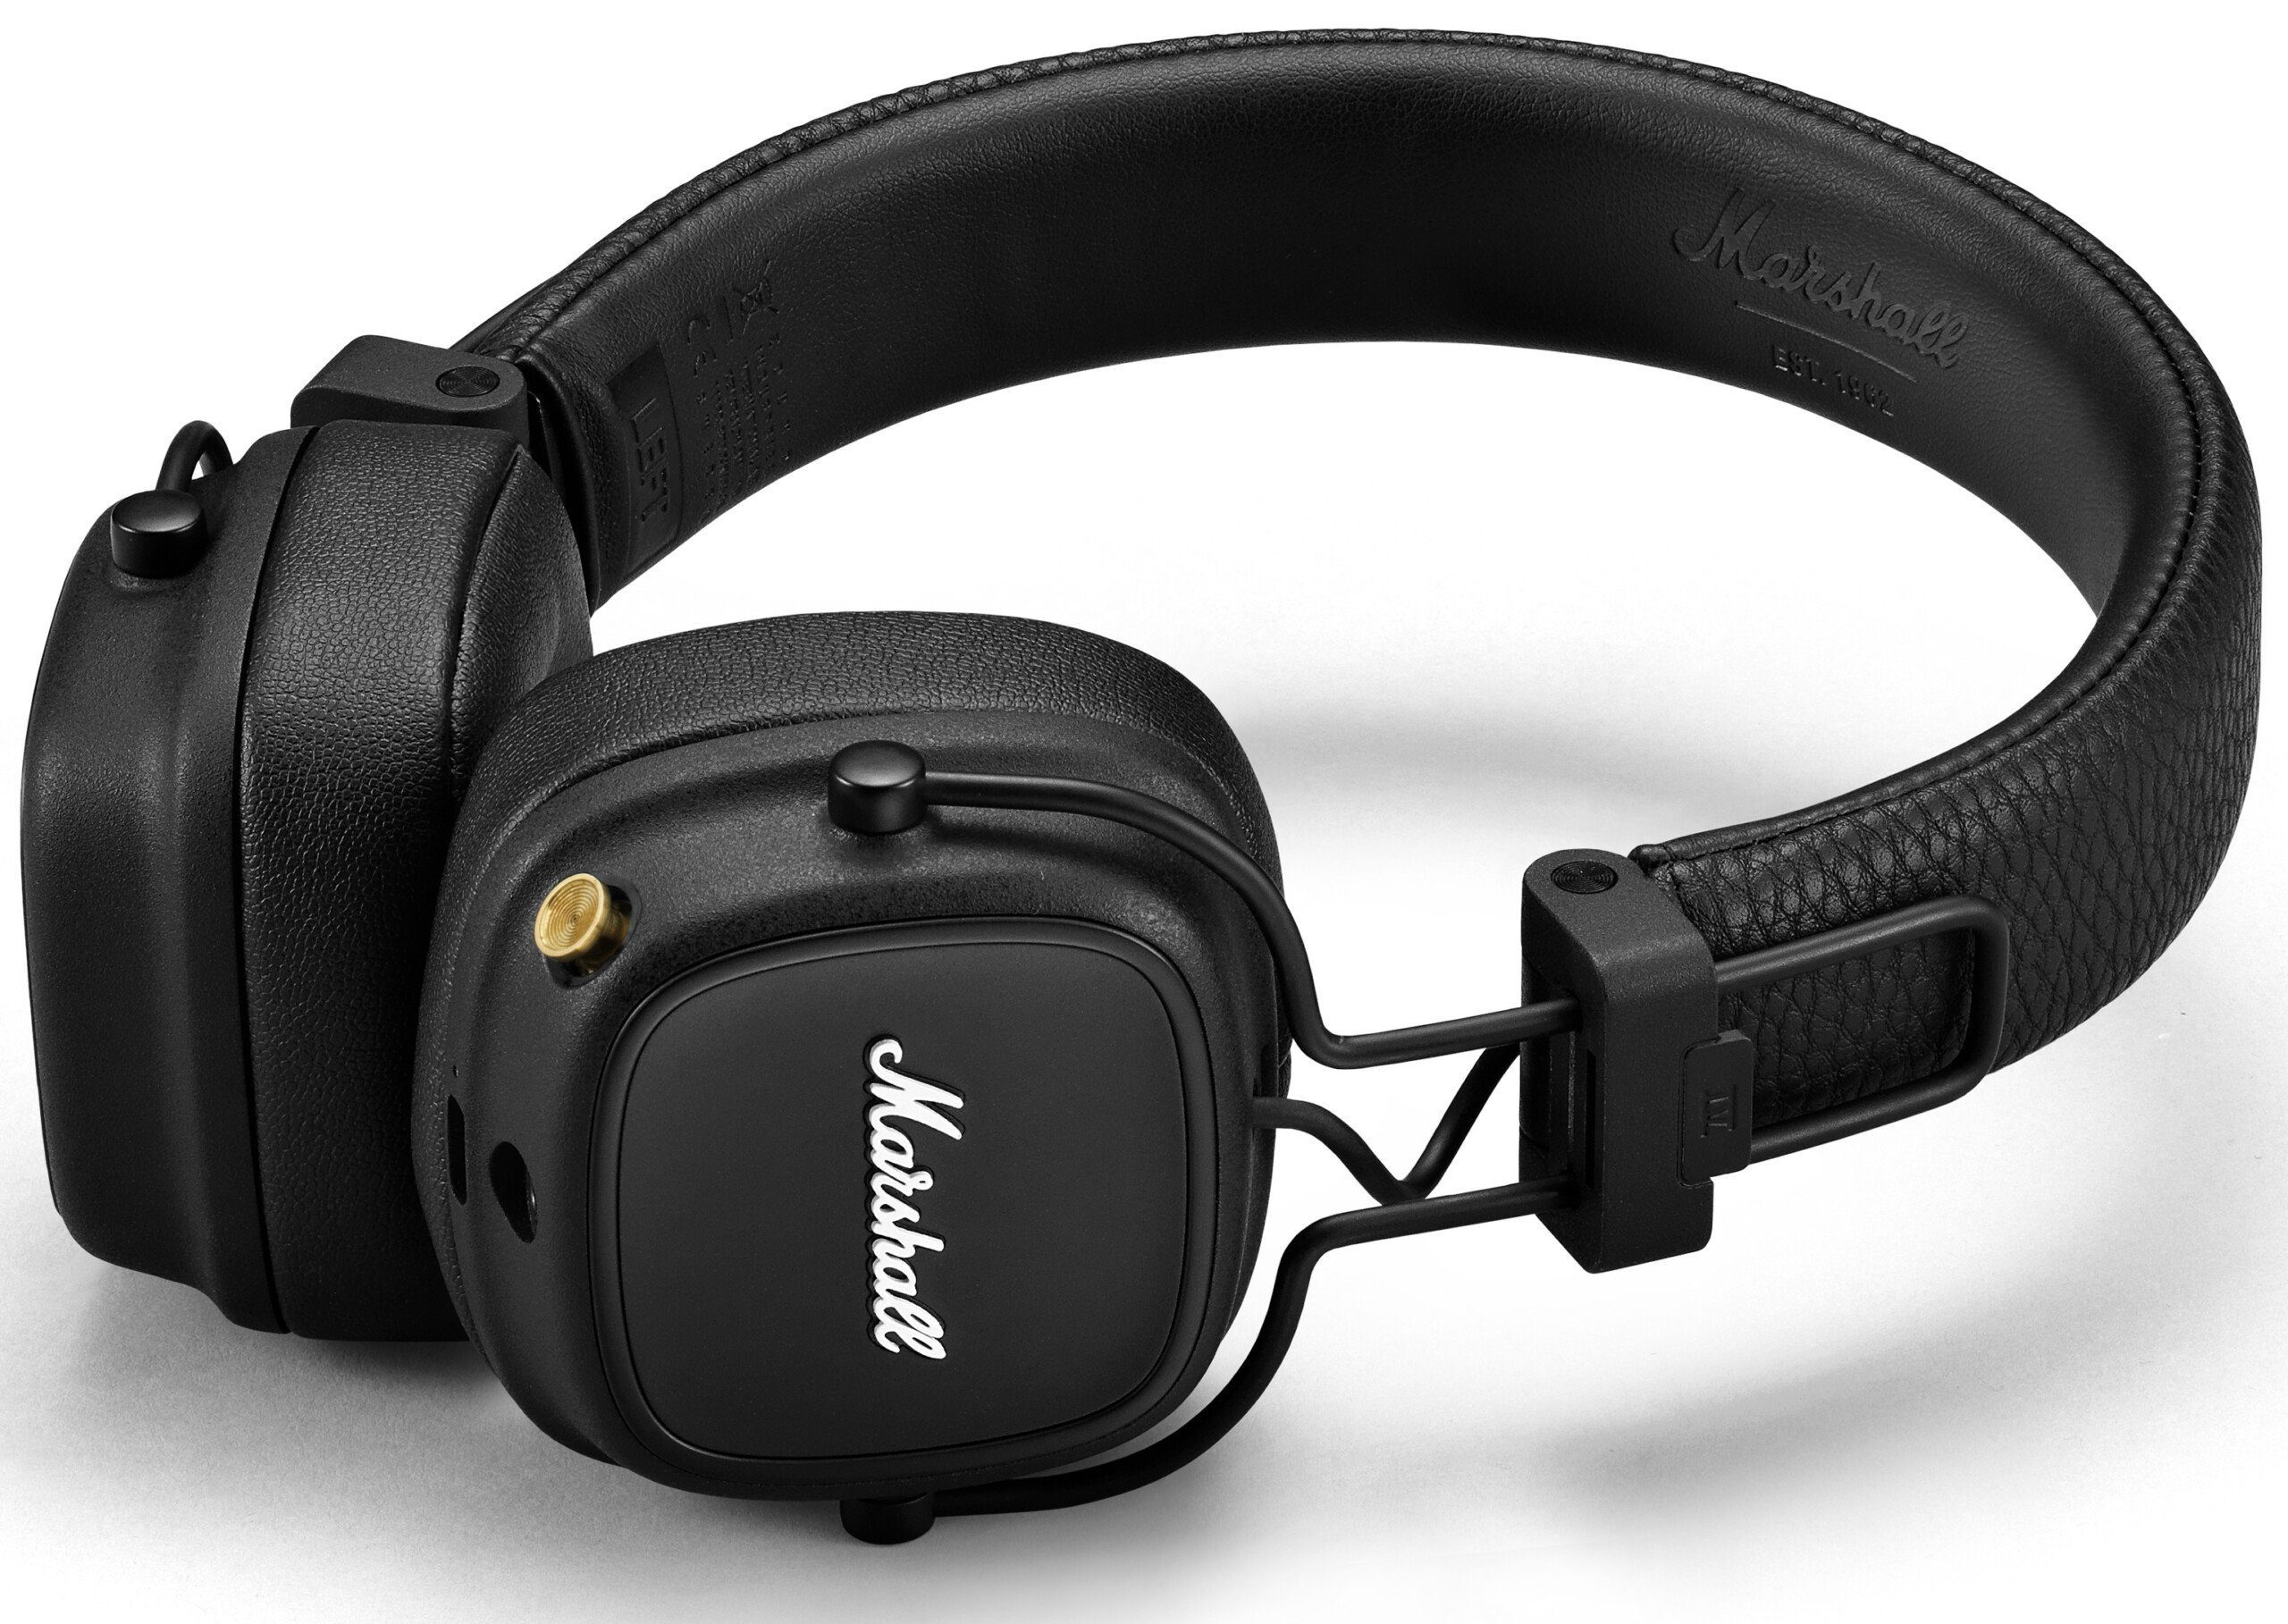 Marshall lance le Major IV, un des premiers casques Bluetooth avec charge sans fil